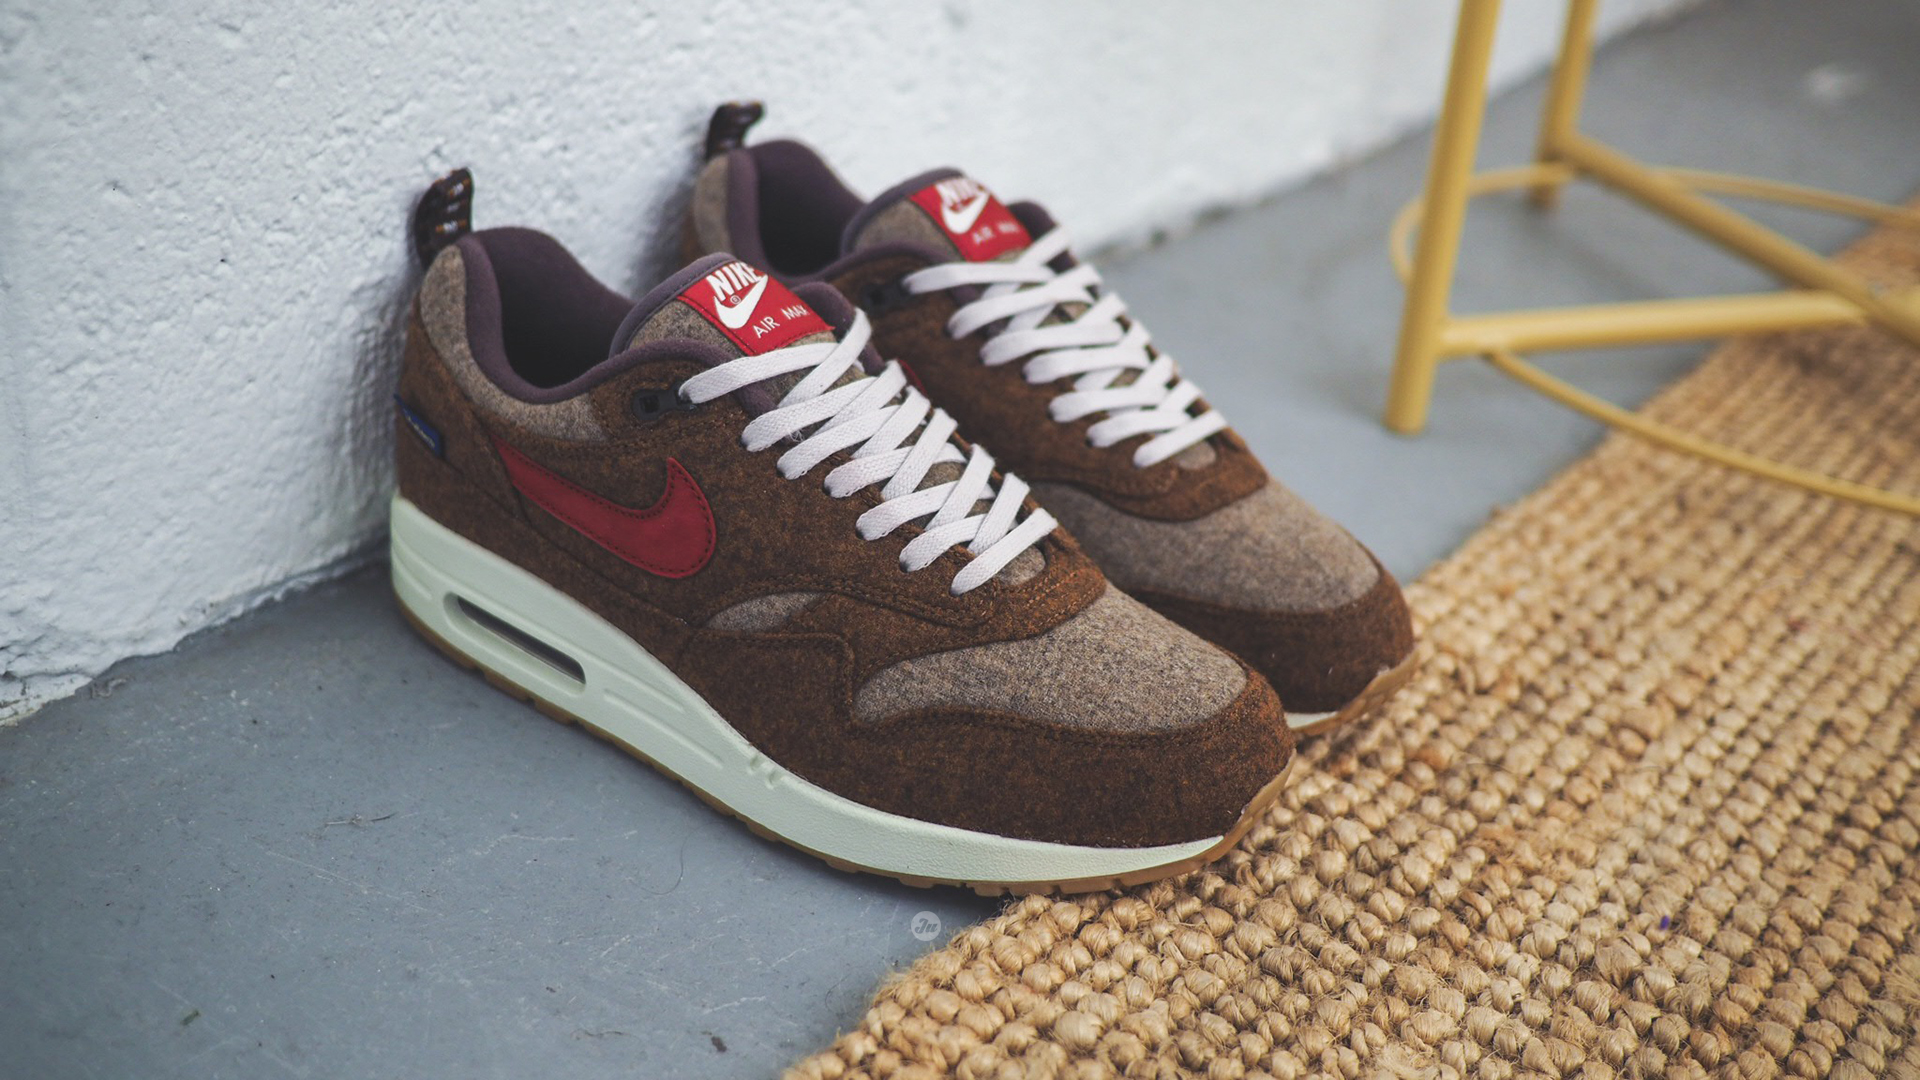 My first NIKEiD pair: Air Max 1 Pendleton 2018 – Juberry